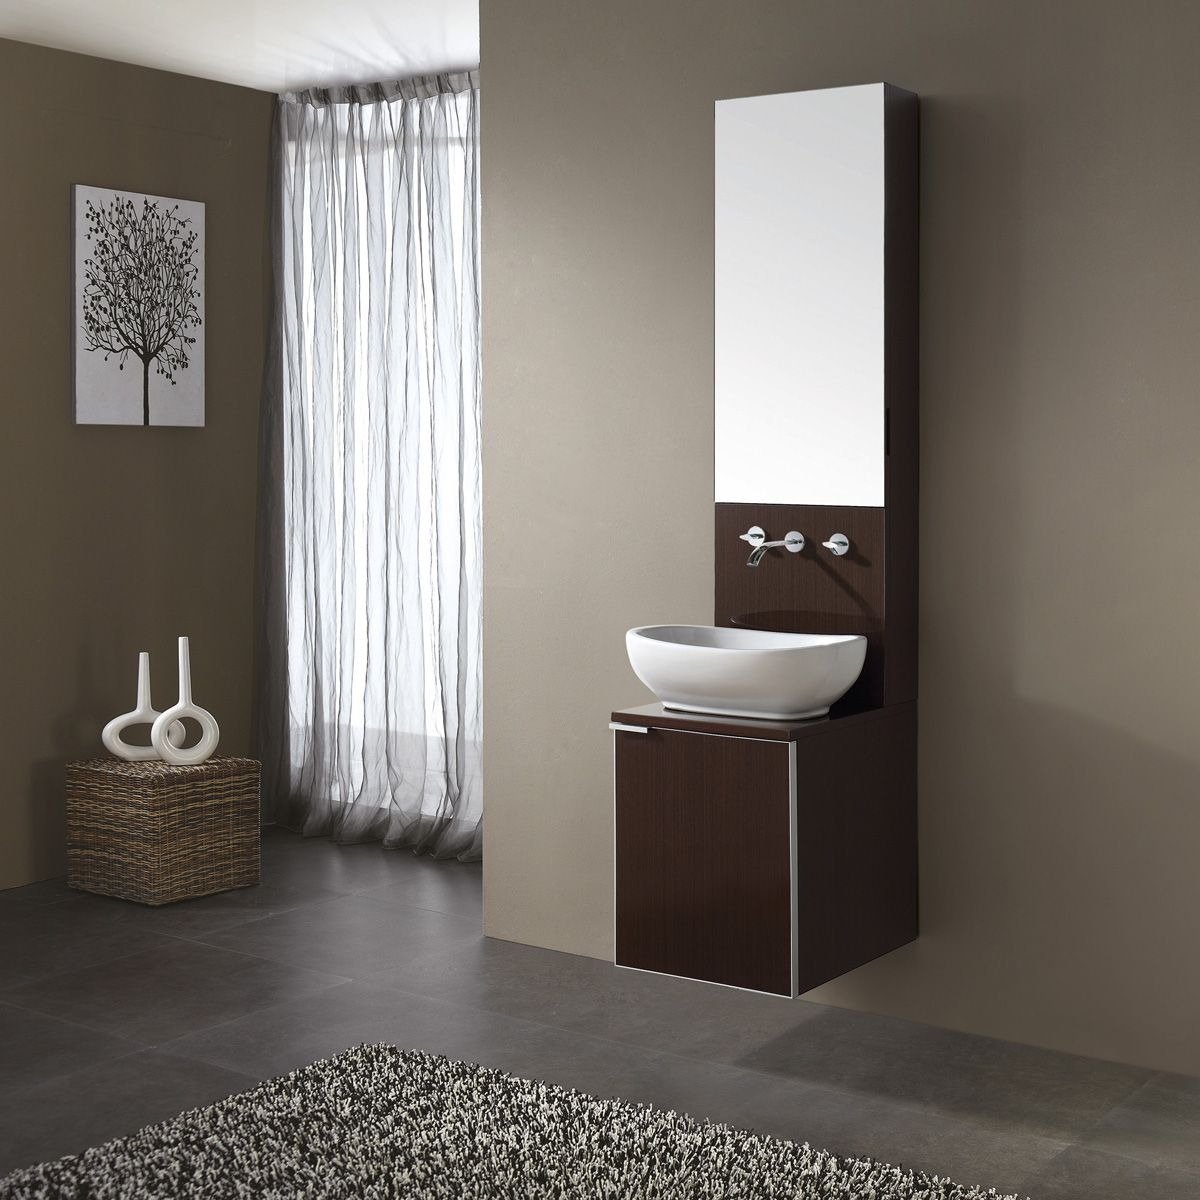 Floating Bathroom Vanities Space And Style To Spare Floating Bathroom Vanities Modern Bathroom Vanity Contemporary Bathroom Vanity